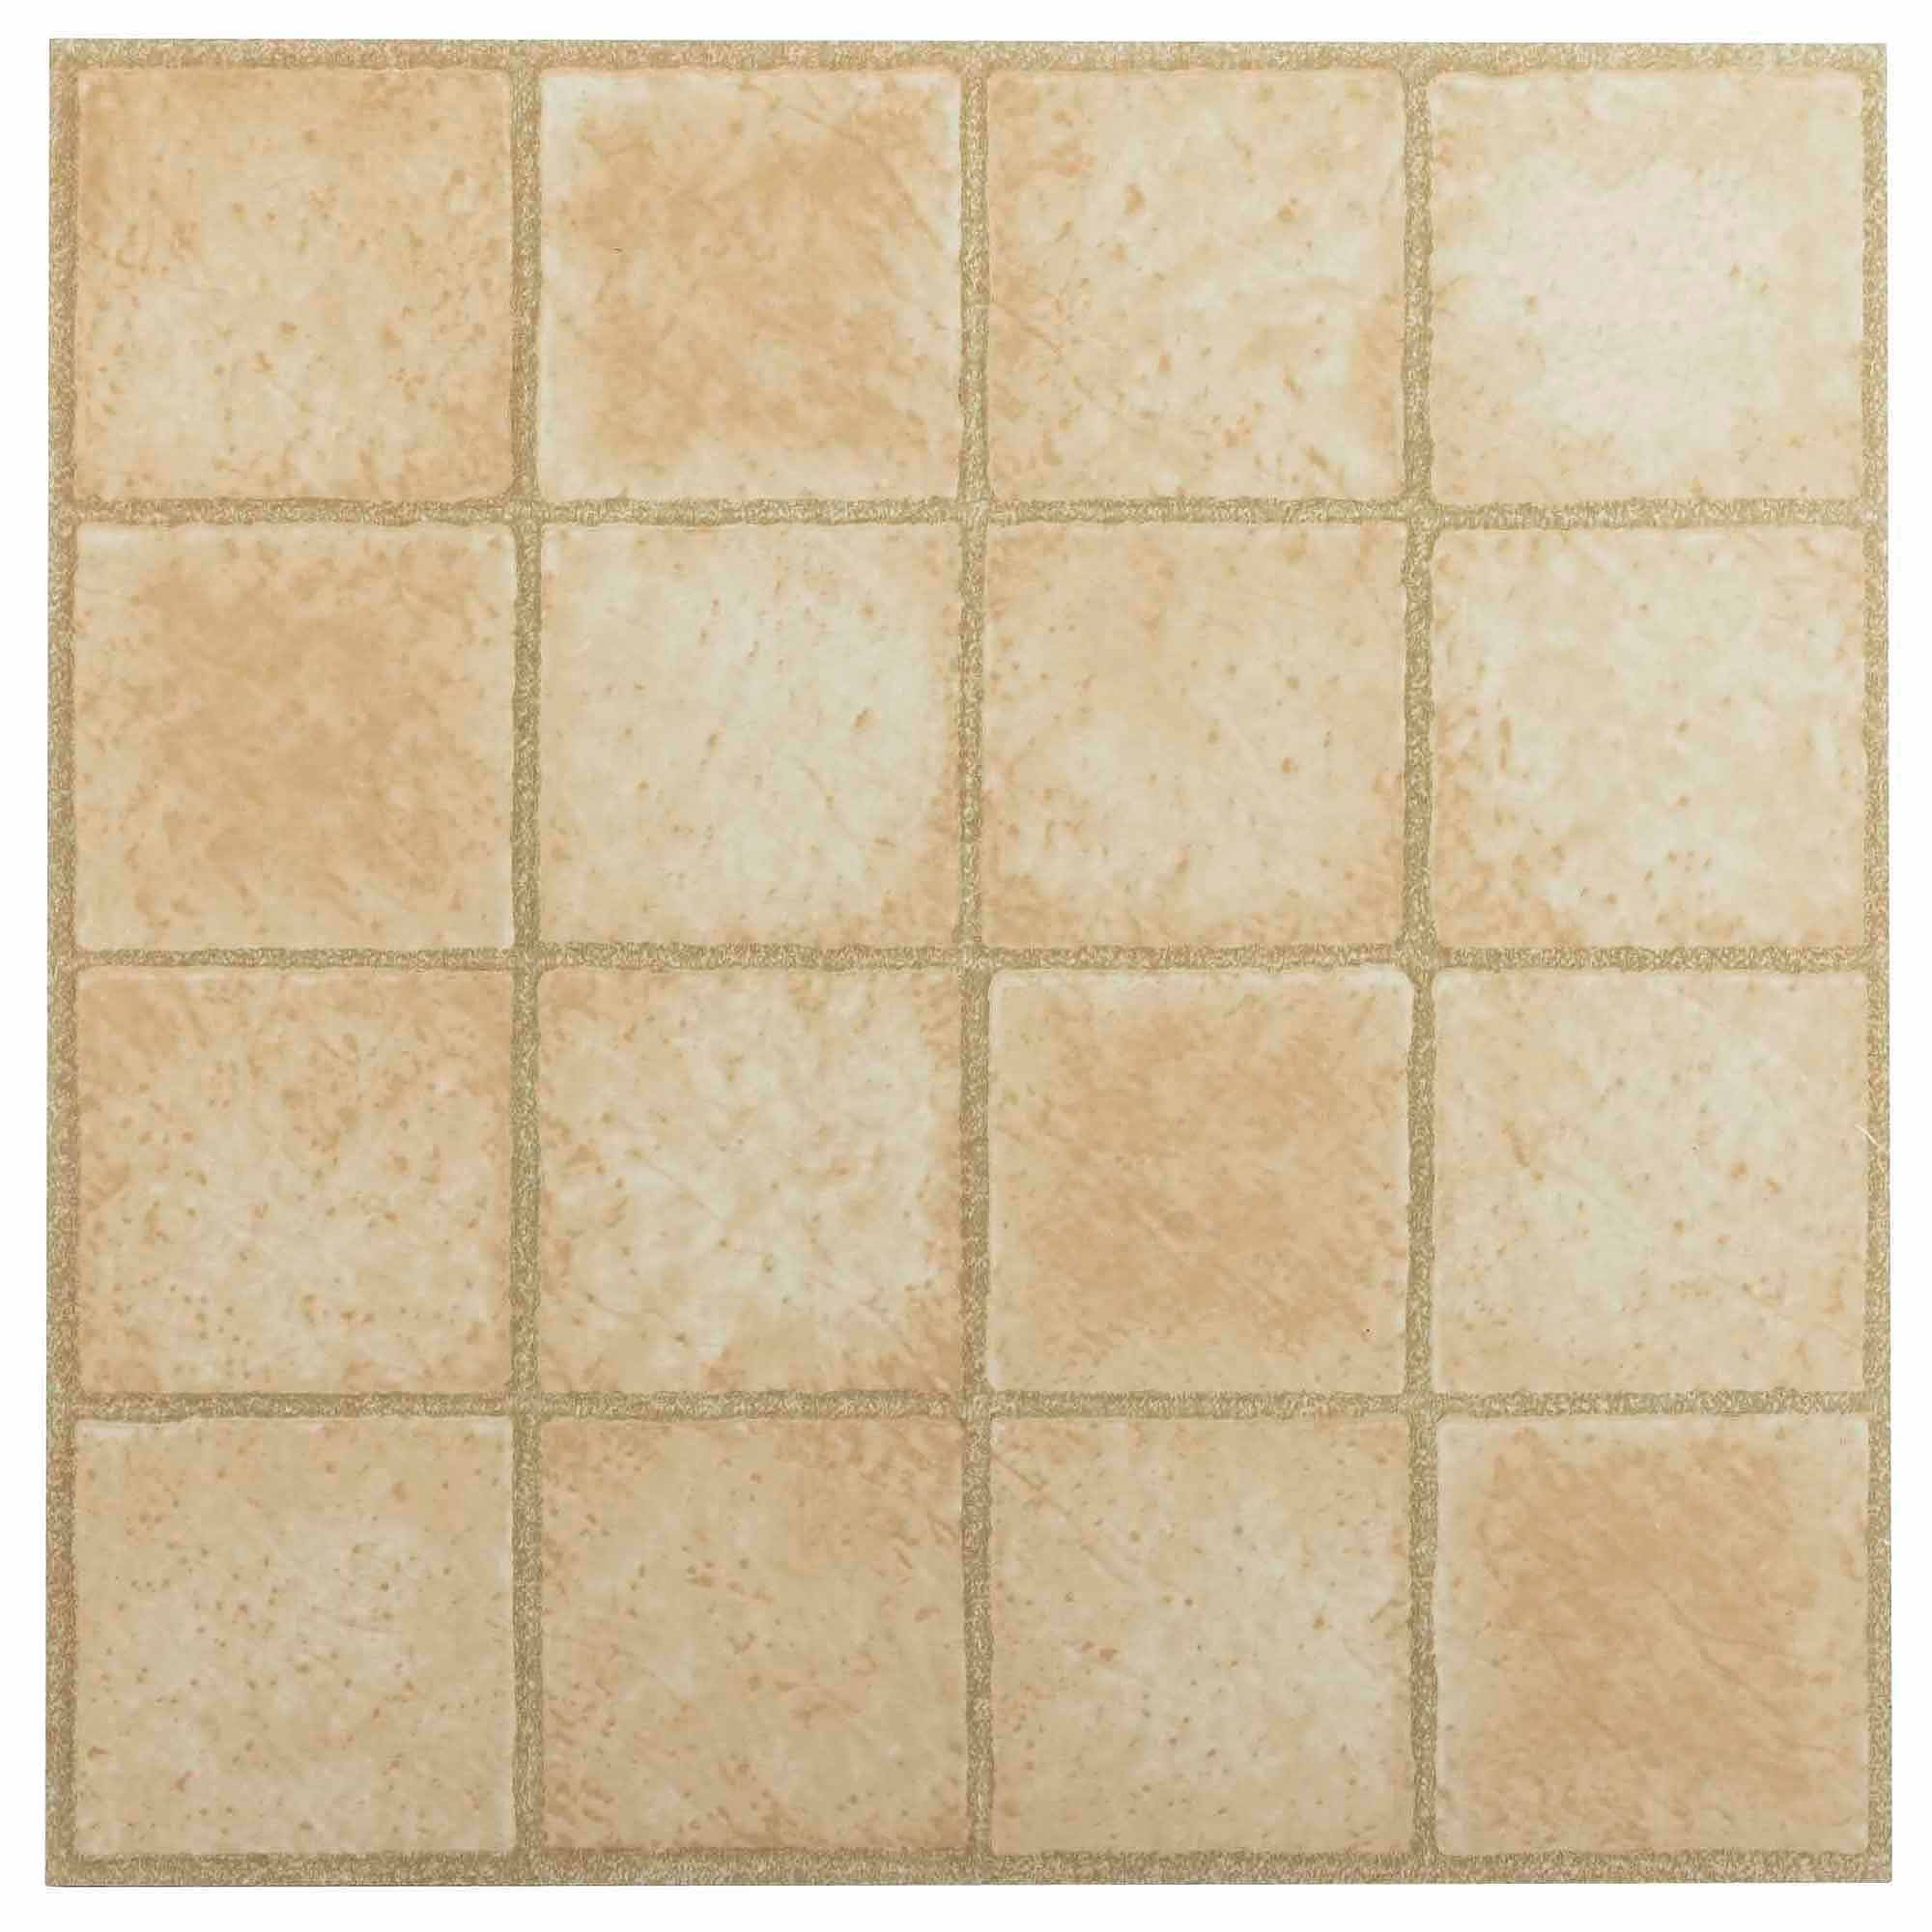 NEXUS 16 Square Sandstone 12x12 Self Adhesive Vinyl Floor Tile - 20 Tiles/20 Sq.Ft.